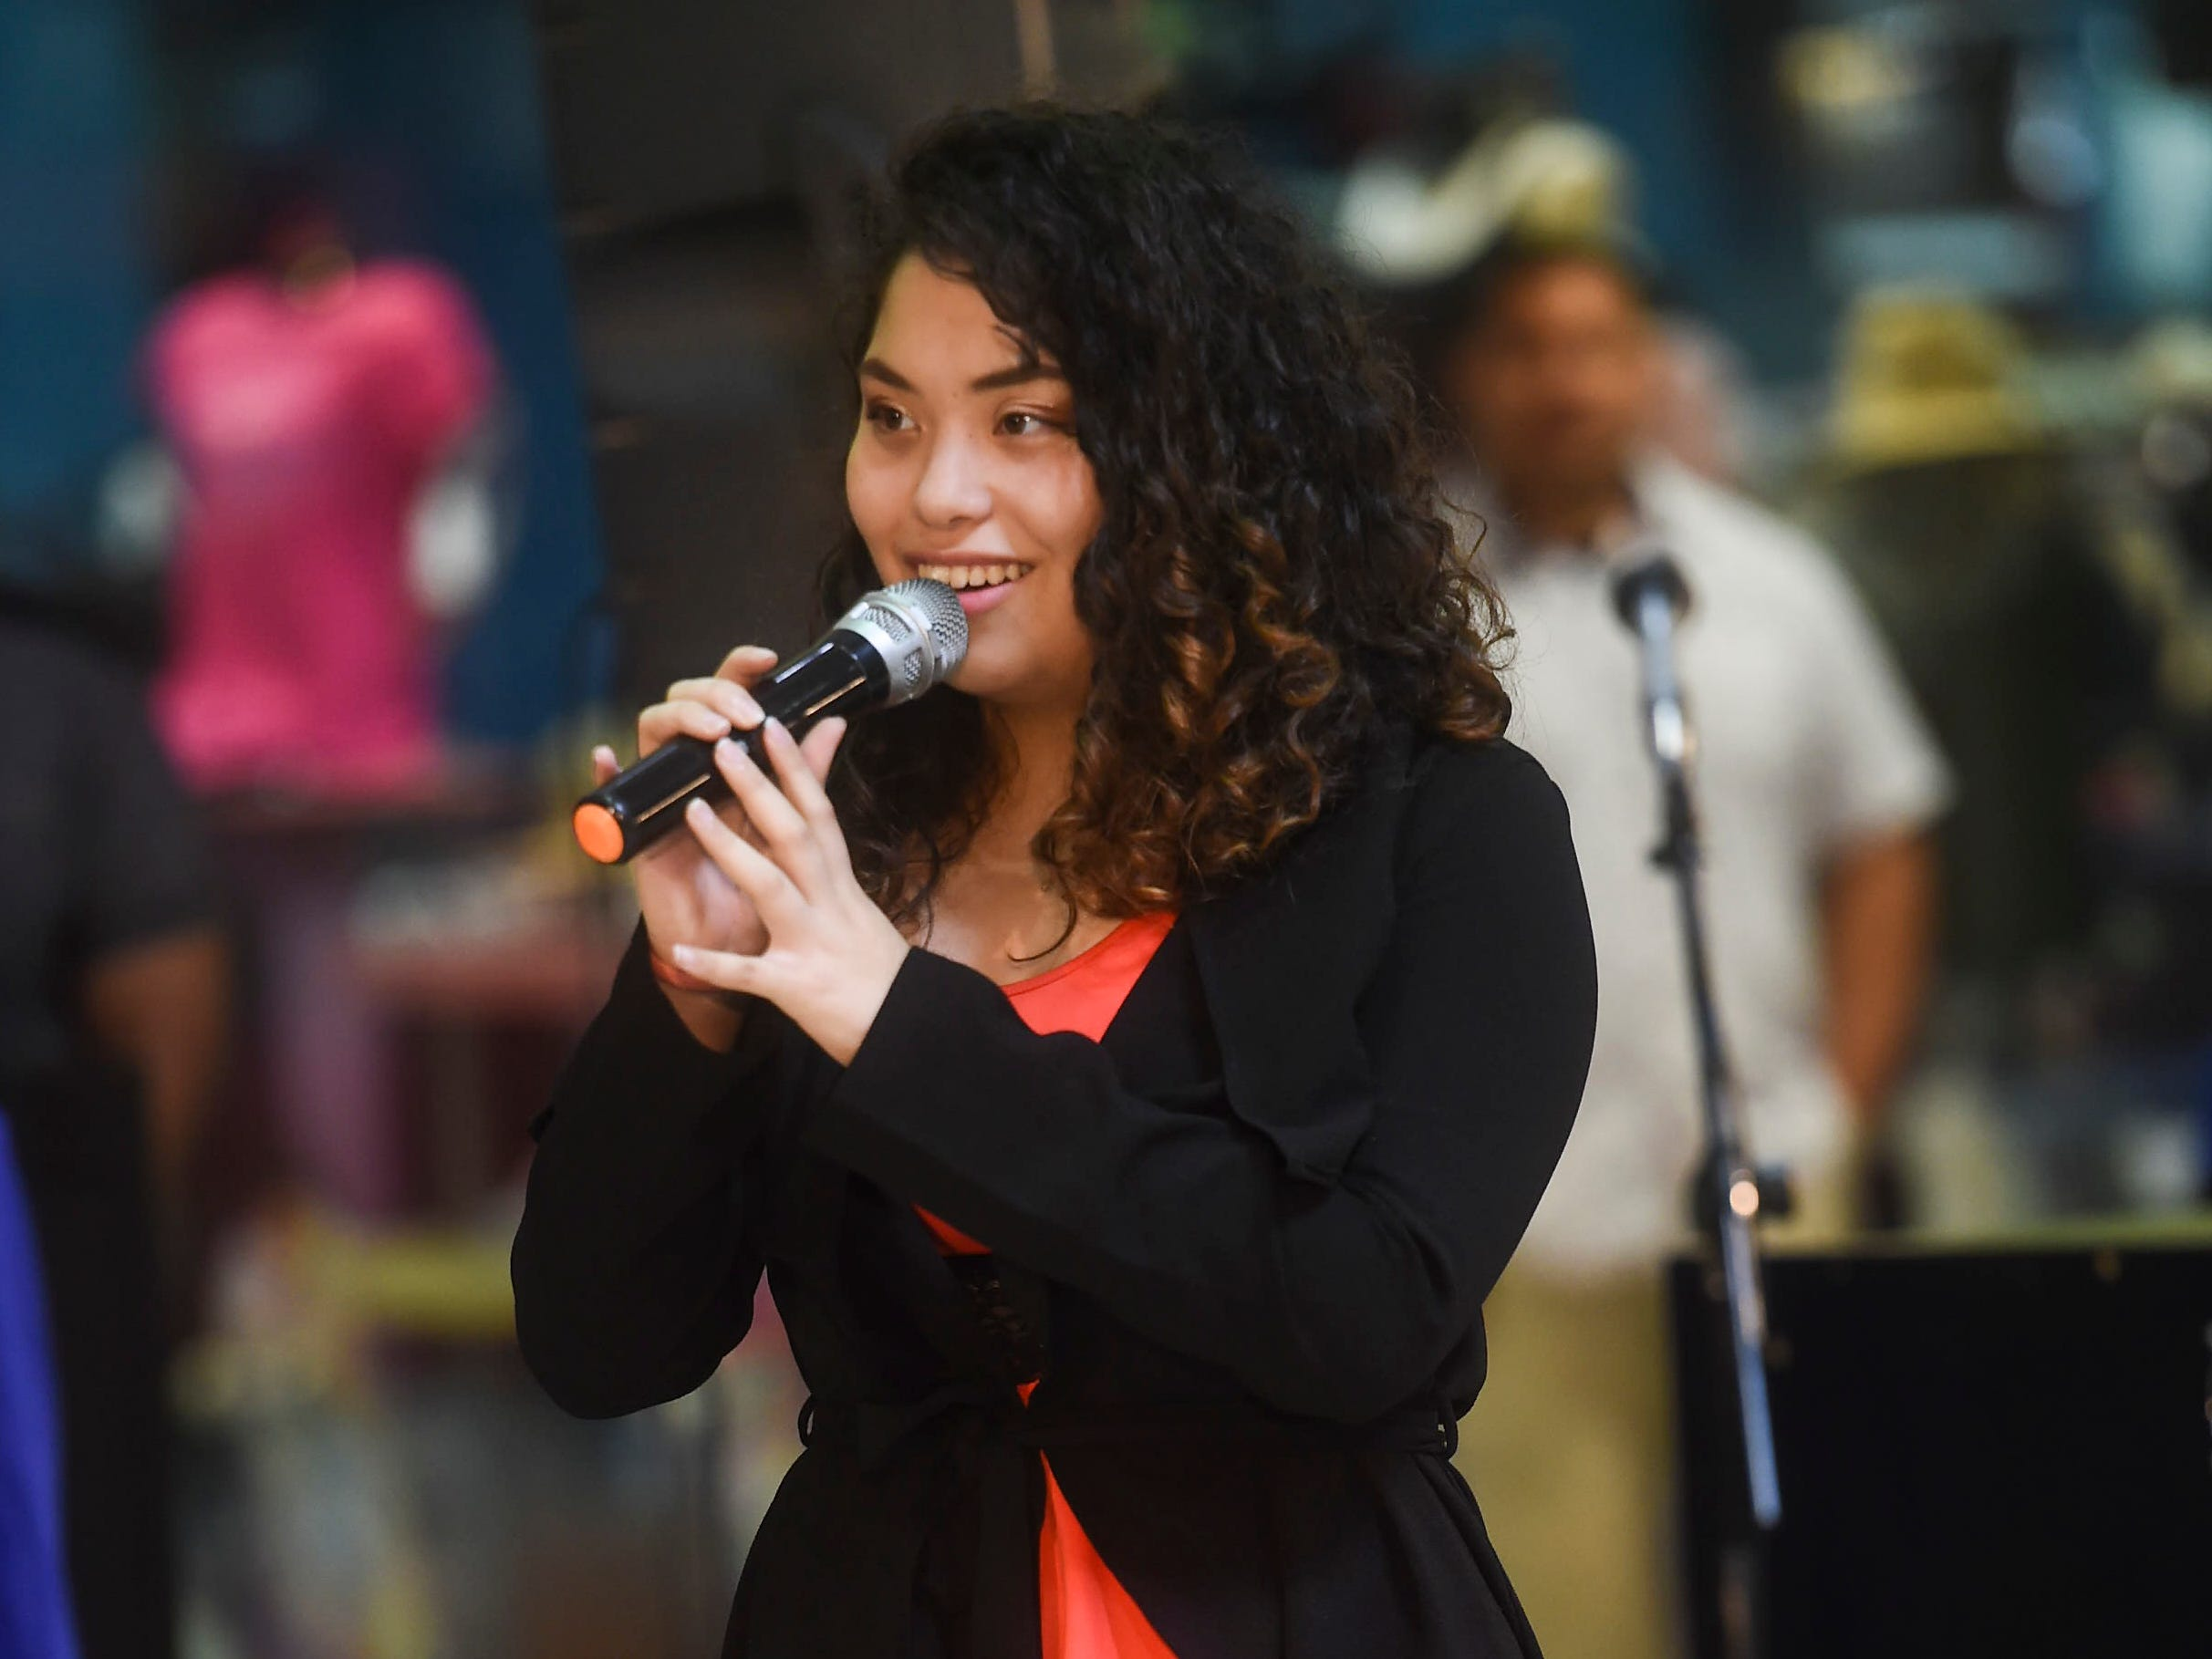 George Washington High School student Mariam Khuja performs a song during the 2019 Martin Luther King Jr. Day of Service ceremony at the Agana Shopping Center, Jan. 21, 2019.